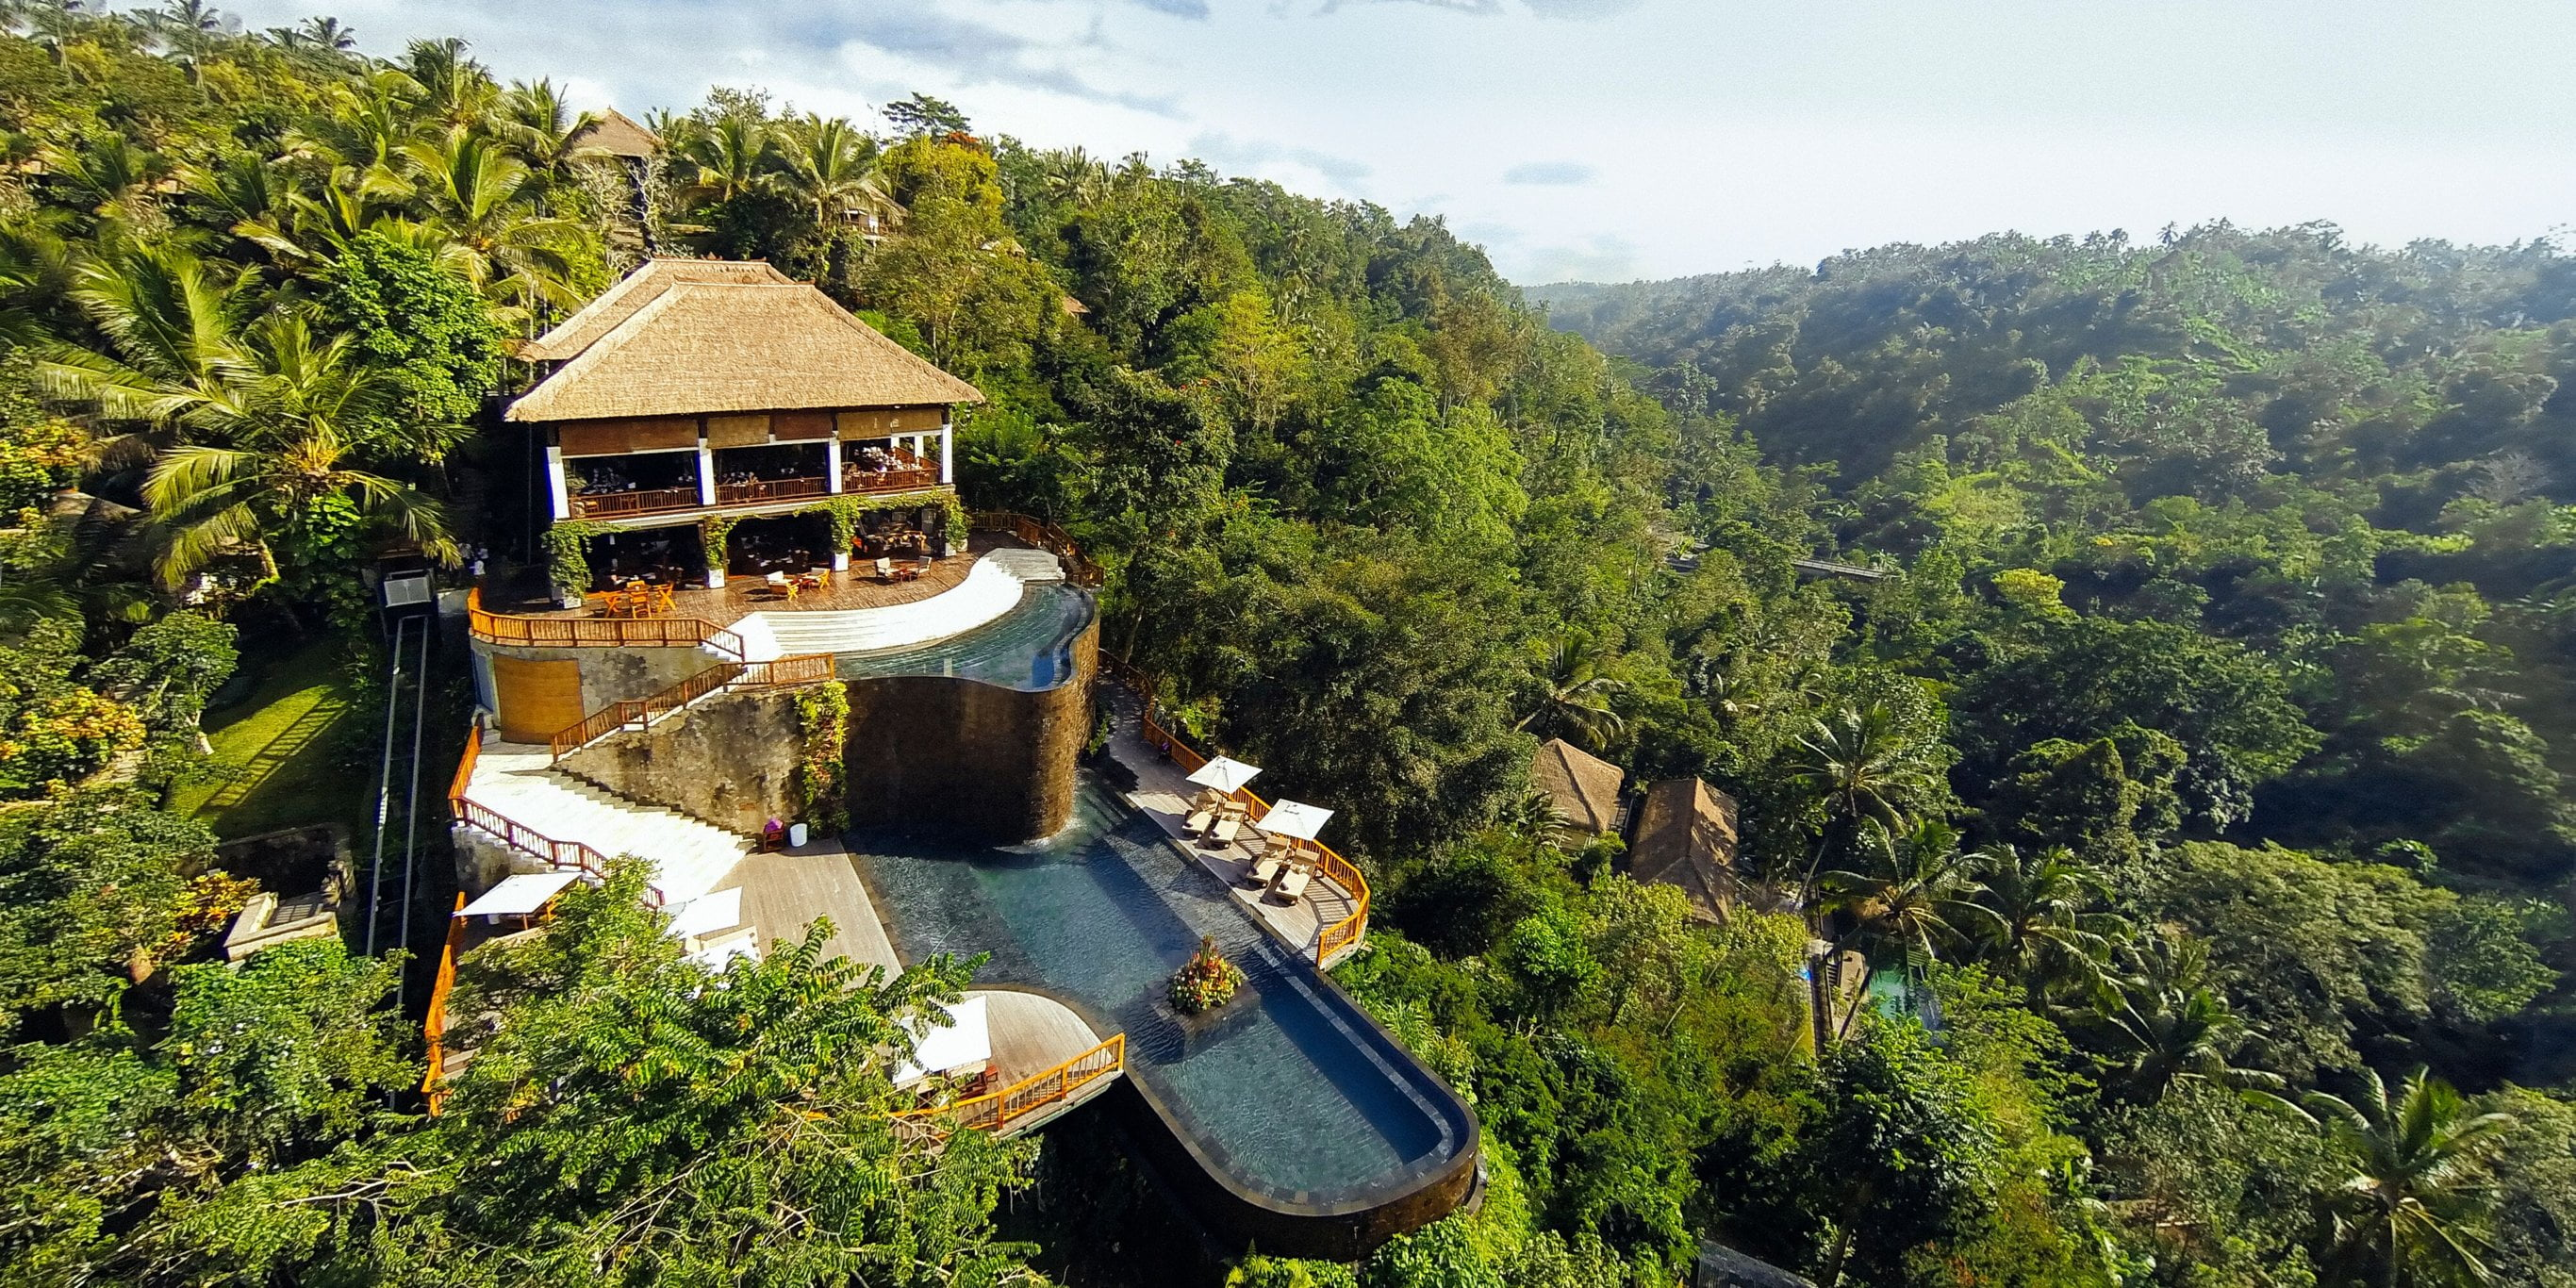 a-luxury-resort-in-the-middle-of-the-jungle-in-bali-has-the-worlds-most-stunning-views-and-the-view-from-the-twin-tiered-pool-quickly-proves-it-business-insider A luxury resort in the middle of the jungle in Bali has the world's 'most stunning views' — and the view from the twin-tiered pool quickly proves it - Business Insider